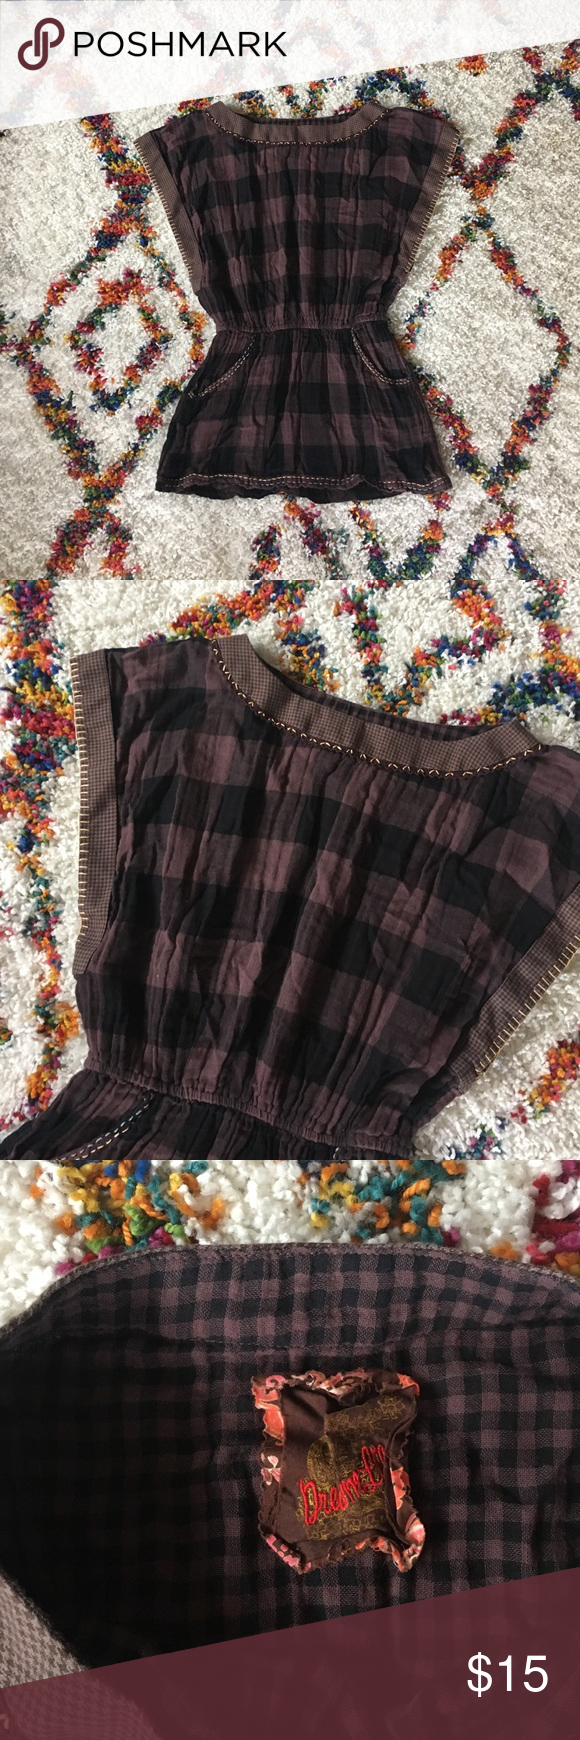 🌙 GINGHAM FESTIVAL TOP 🌙 Beautifully made gingham top in black and brown with stitching detailing. Cinched waist and pockets! So cute on!! PLEASE NOT THAT ALL GARMENTS ARE STEAMED OR IRONED BEFORE SENDING | NOT BRAND LISTED // LISTED FOR VIEWS. Free People Tops